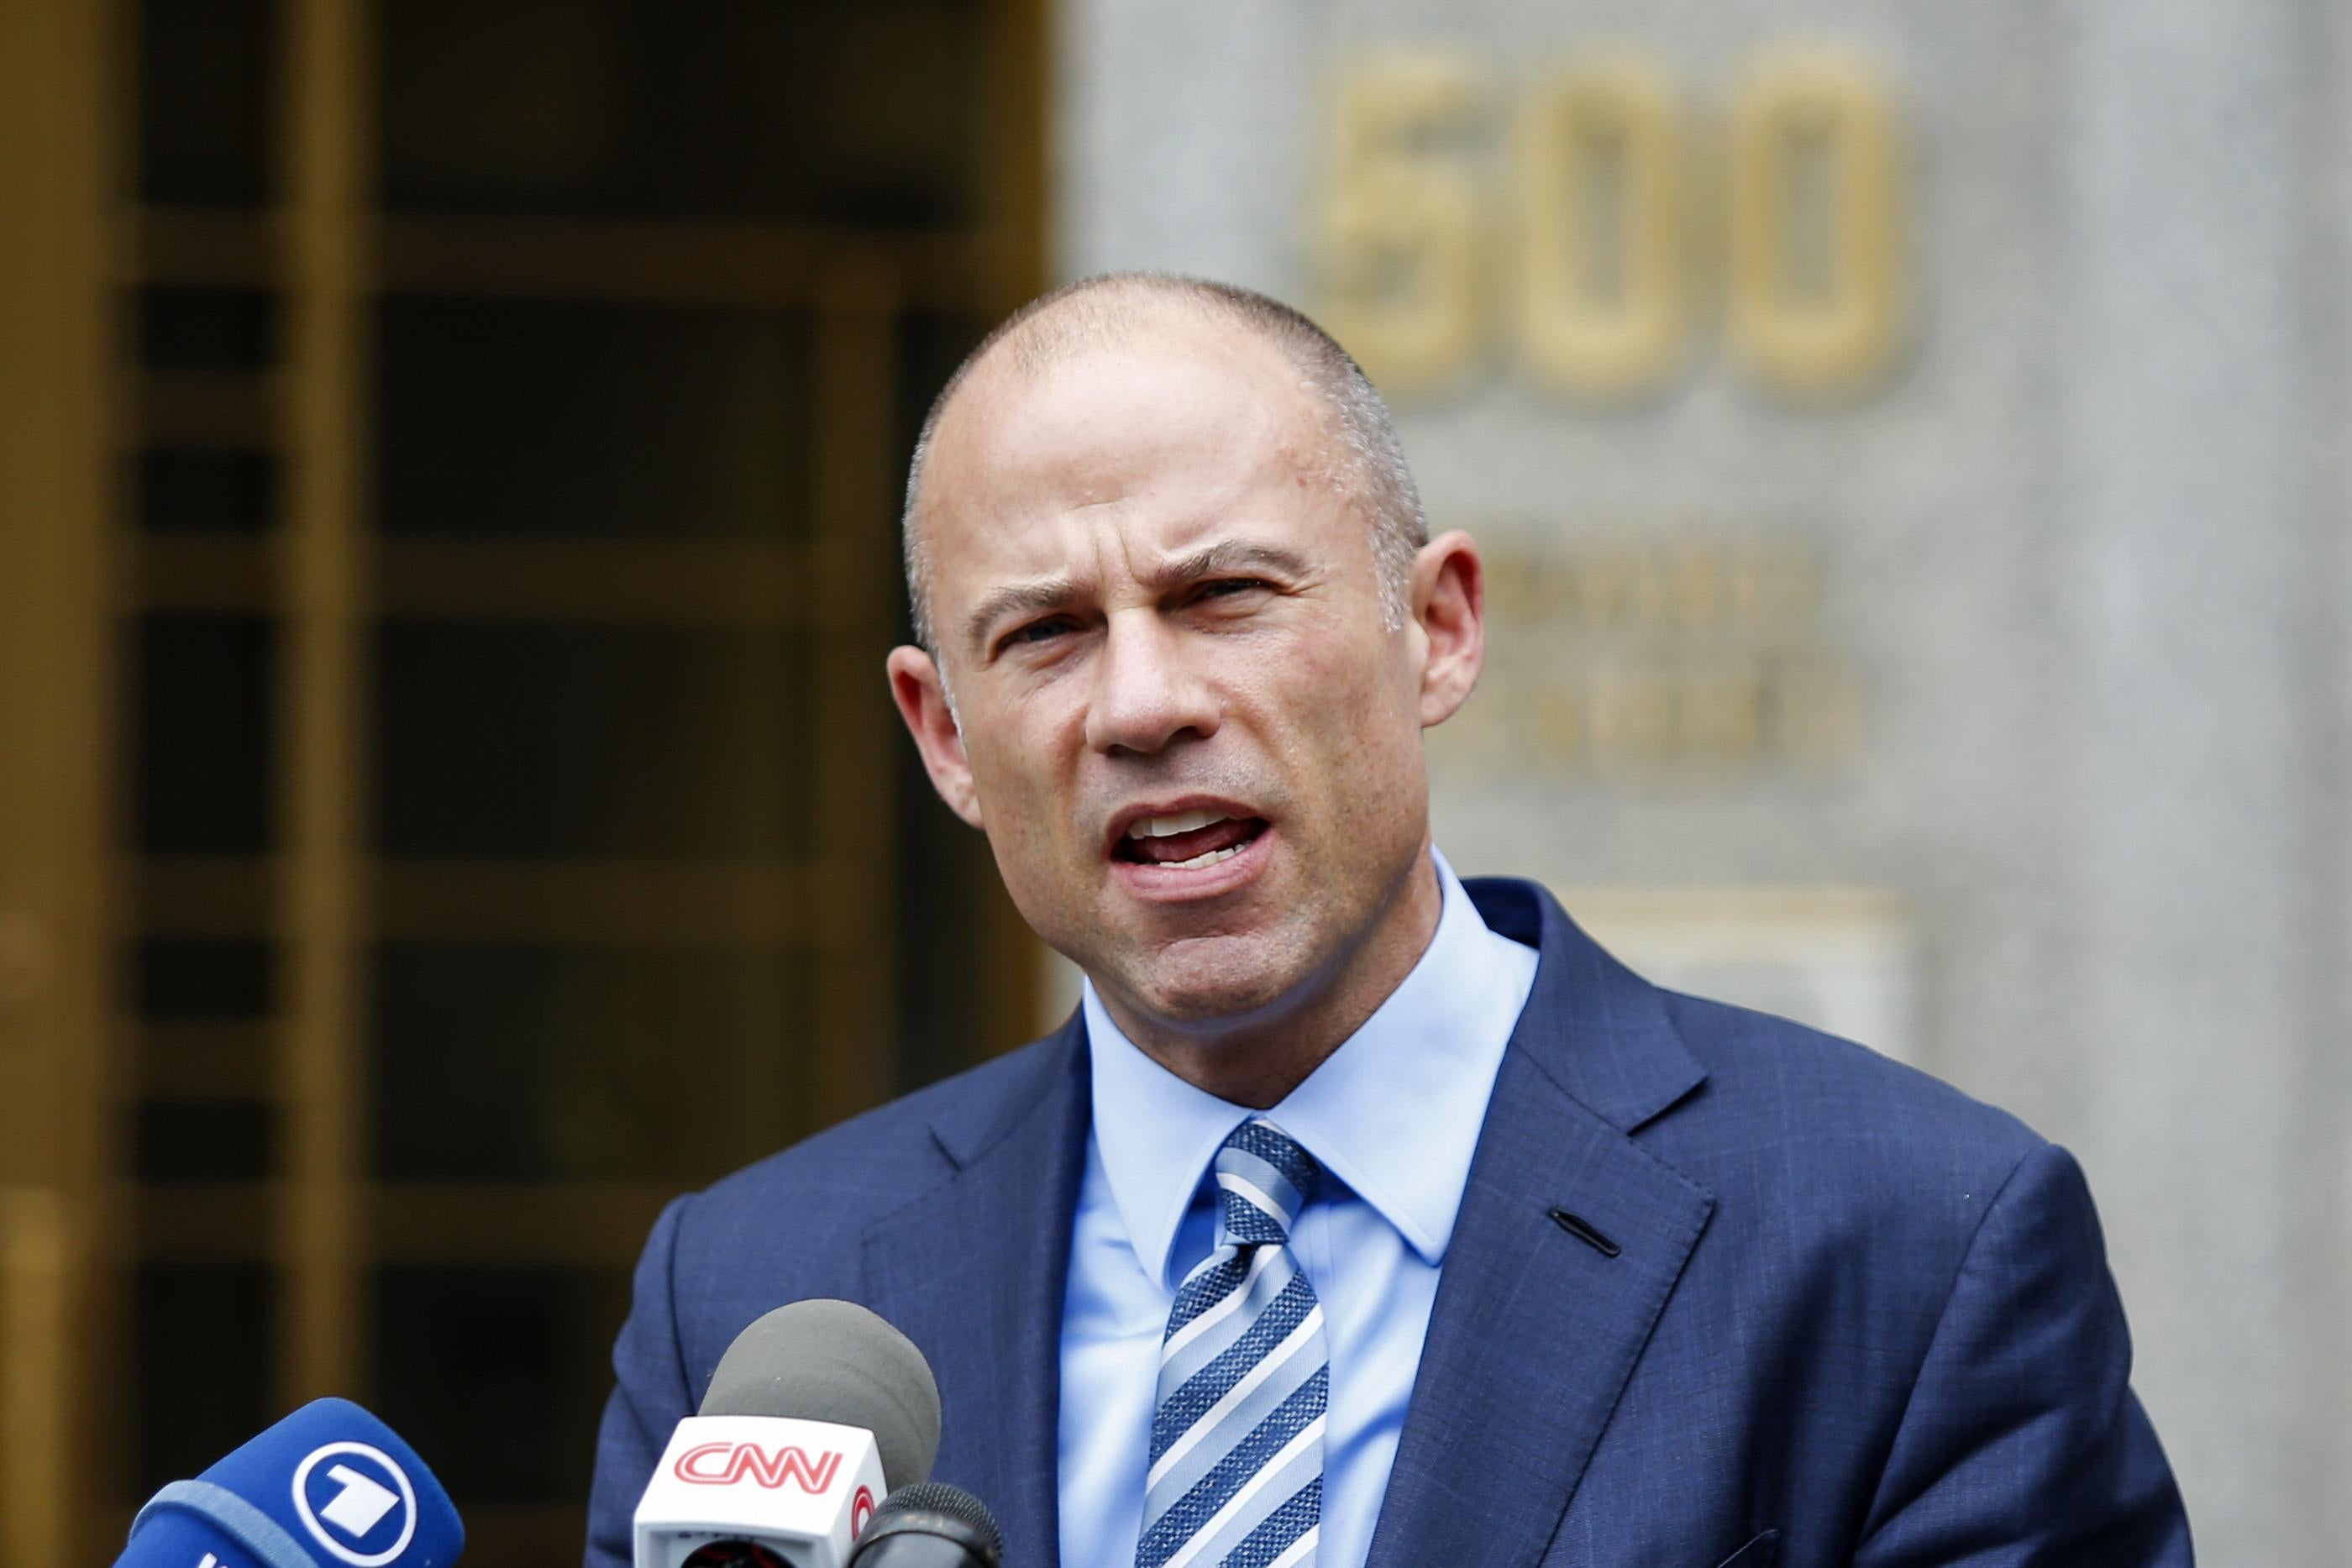 Michael Avenatti speaks to media as he exits a federal courthouse in New York City.